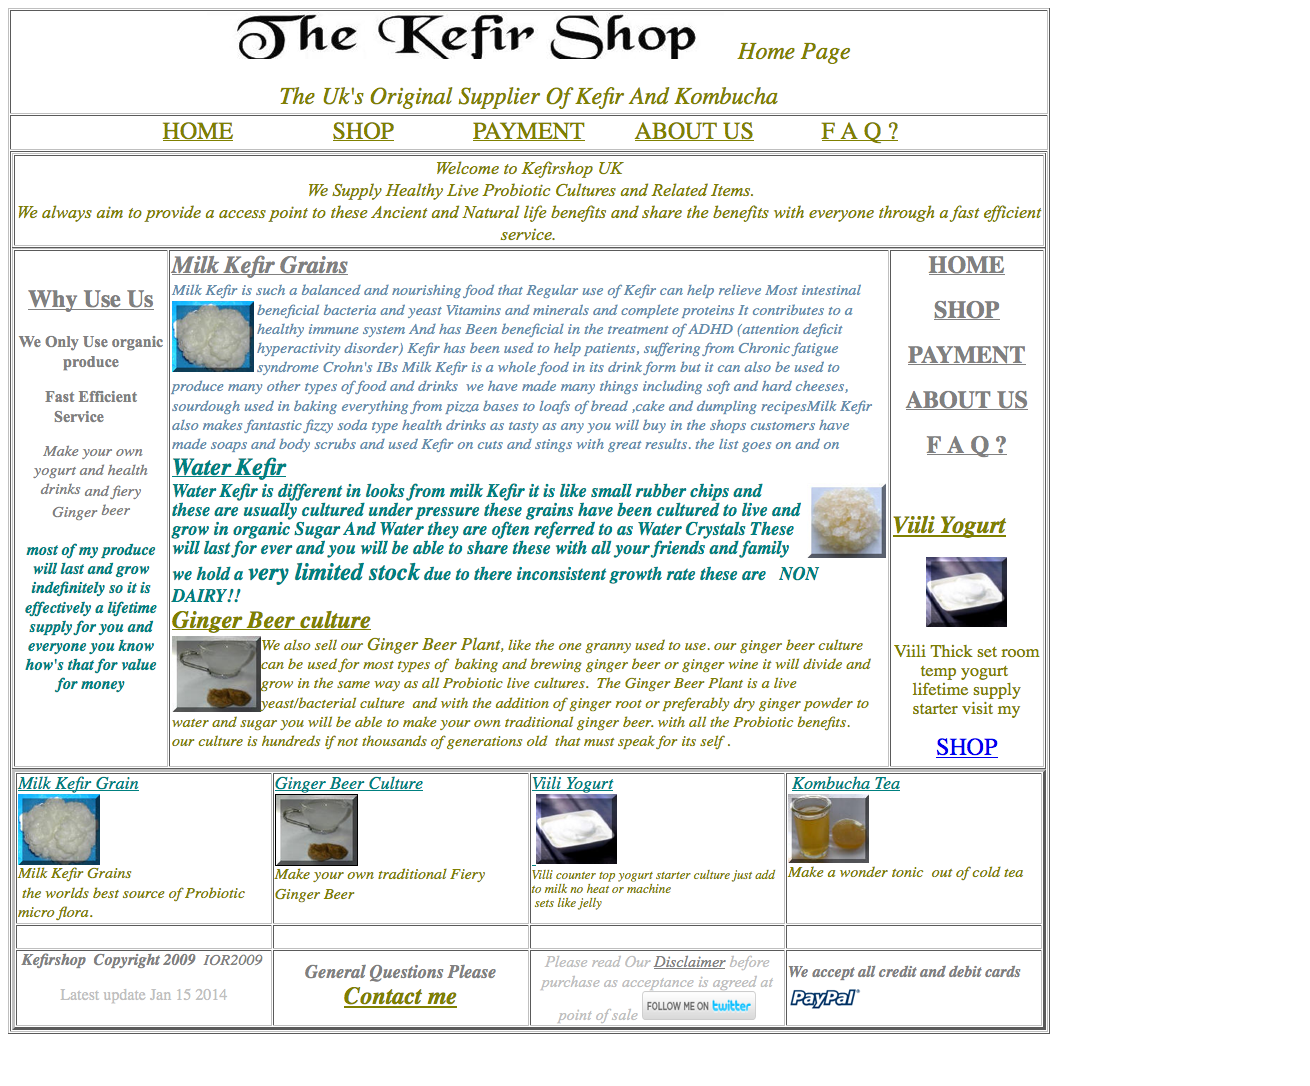 kefirshop.co.uk